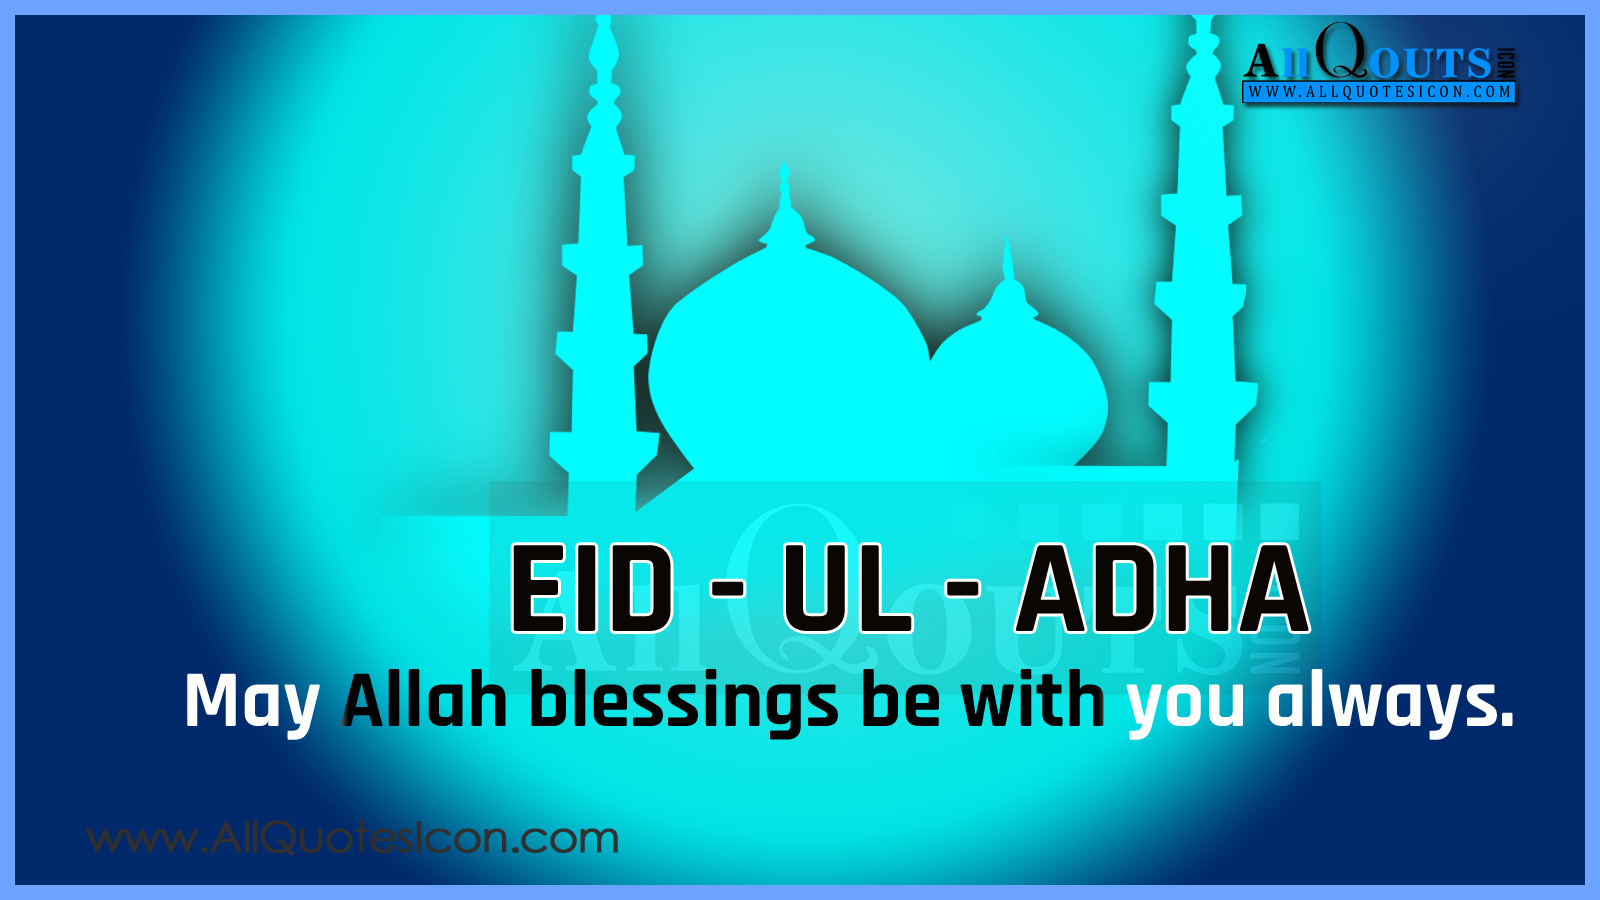 Eid ul adha quotes and wishes in english best greeting card and enjoy the best tariq eid ul adha quotes quotations by tariq eid ul adha kristyandbryce Images